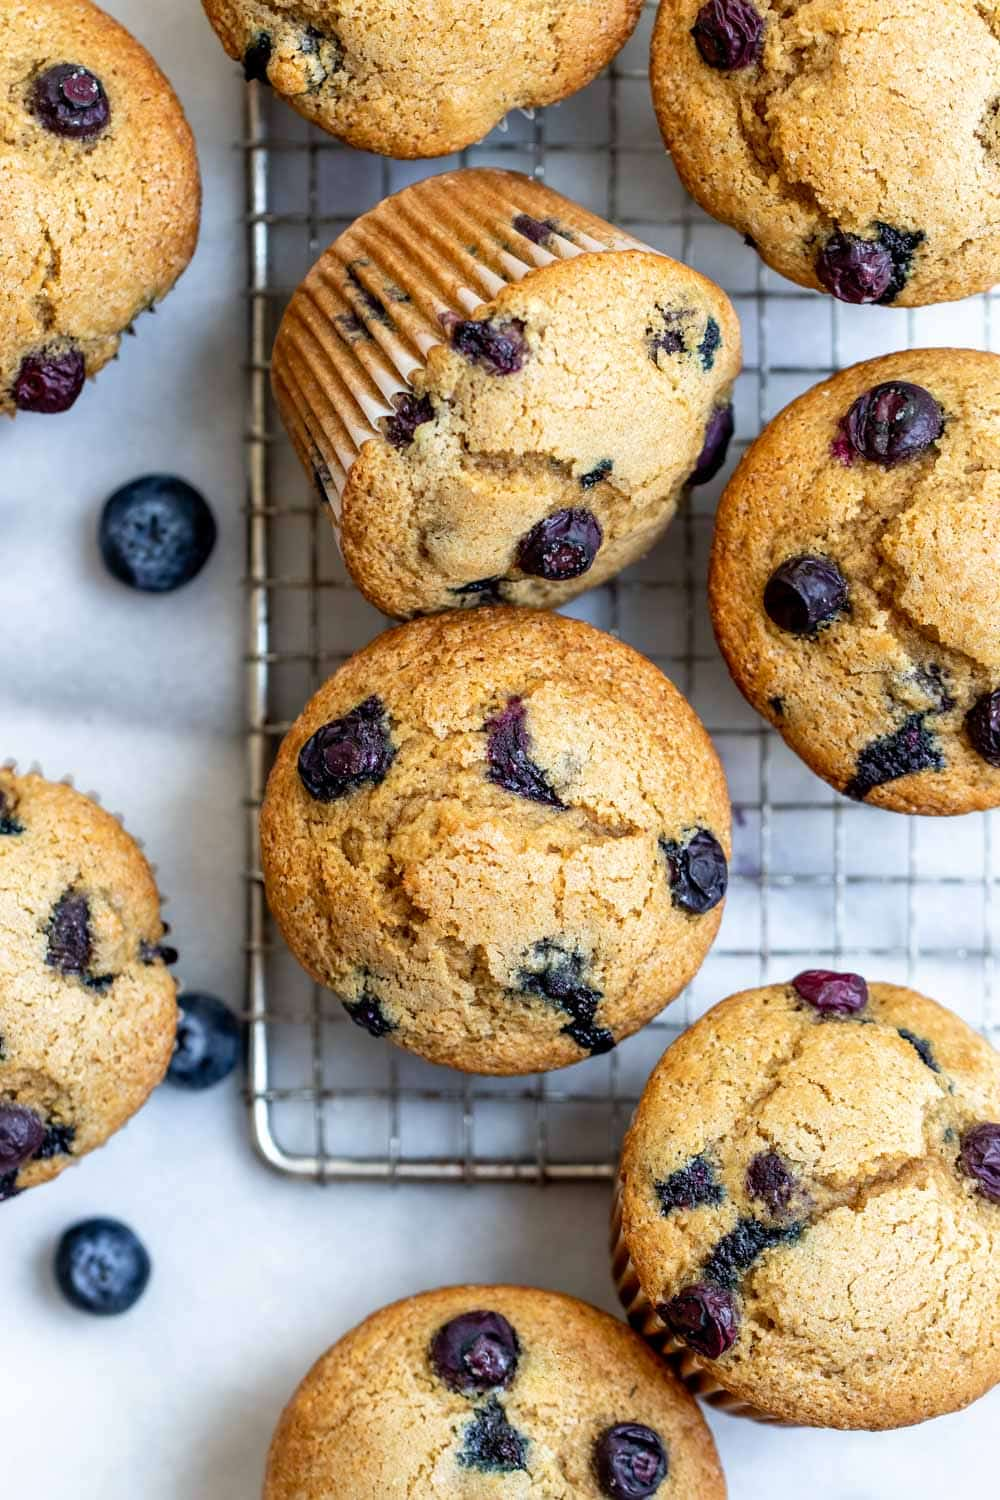 Overhead shot of the muffins with blueberries on the side.